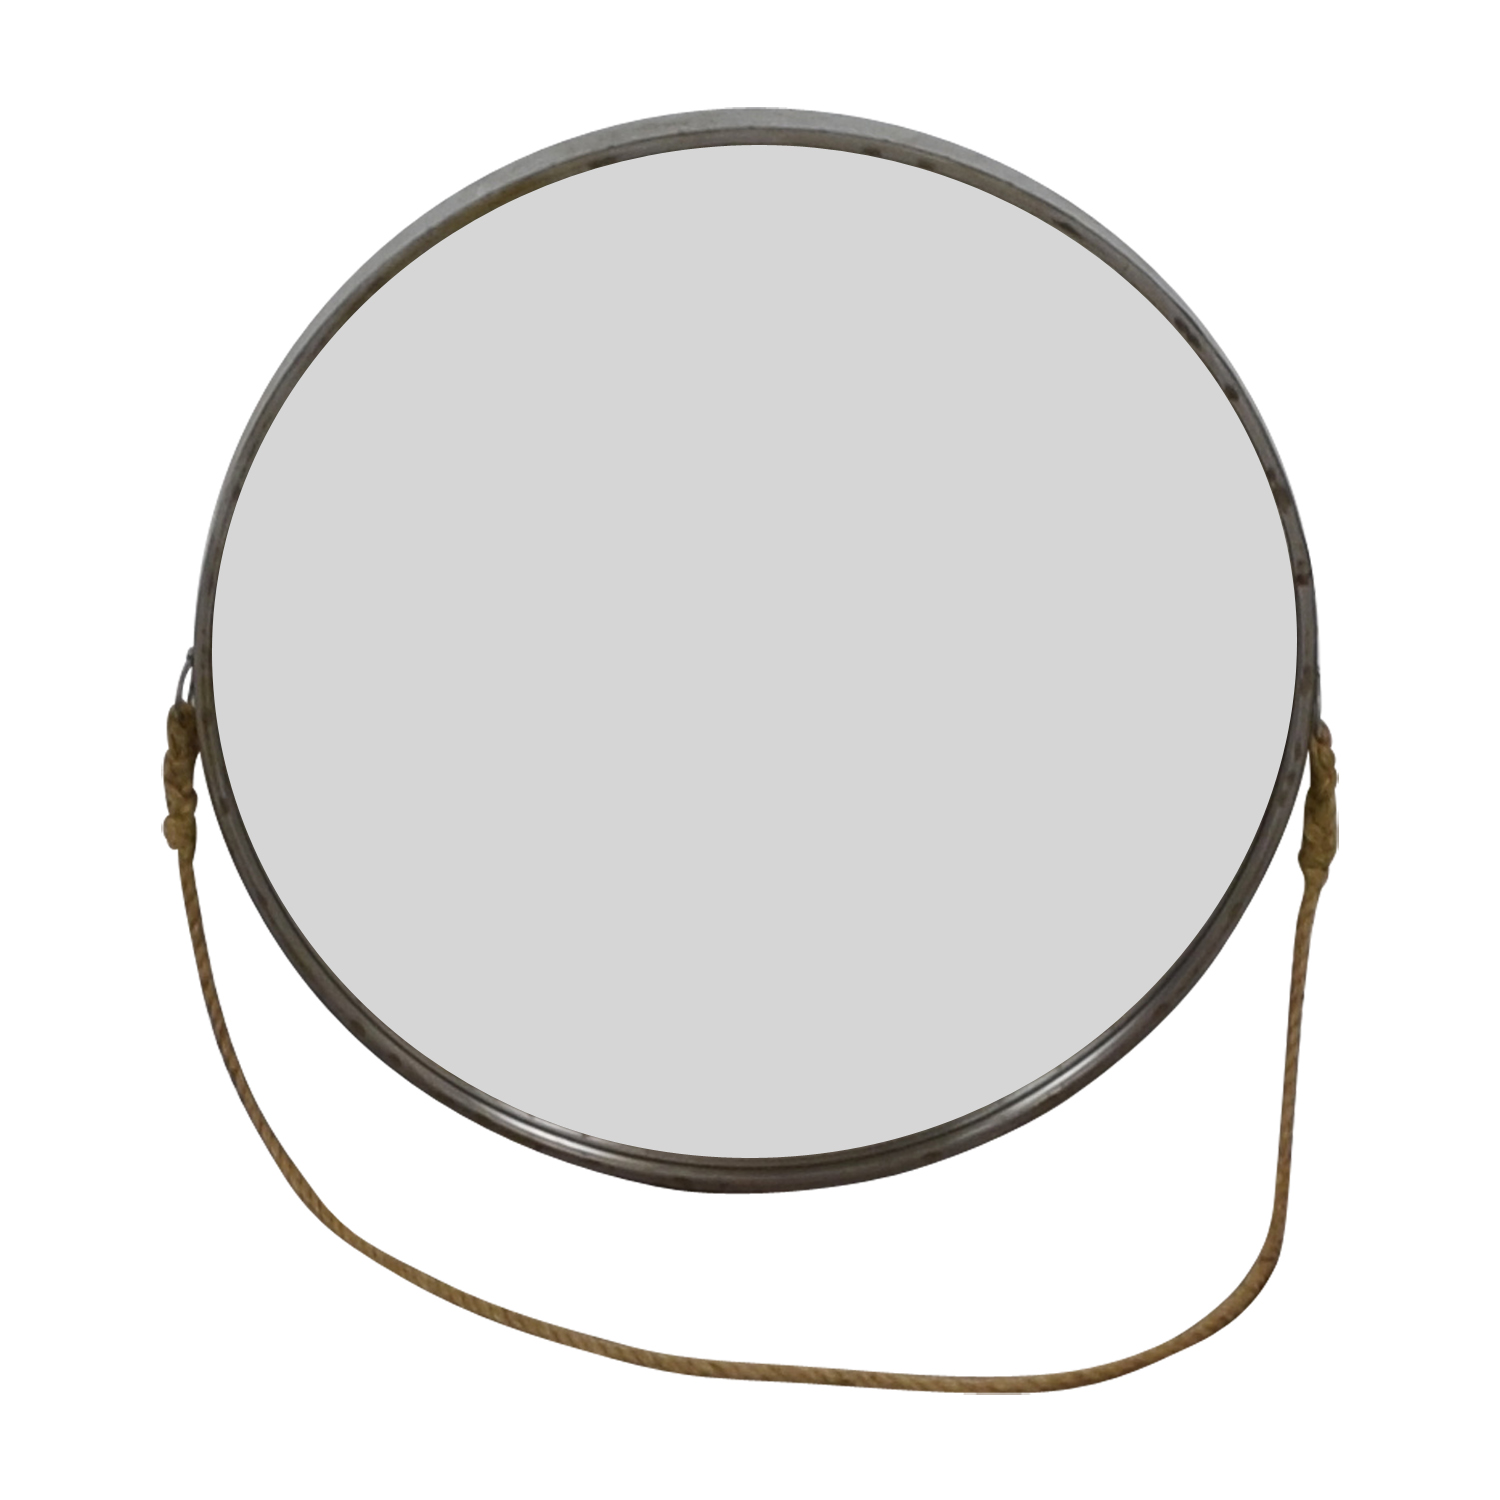 Bed Bath & Beyond Bed Bath & Beyond Round Hanging Mirror used